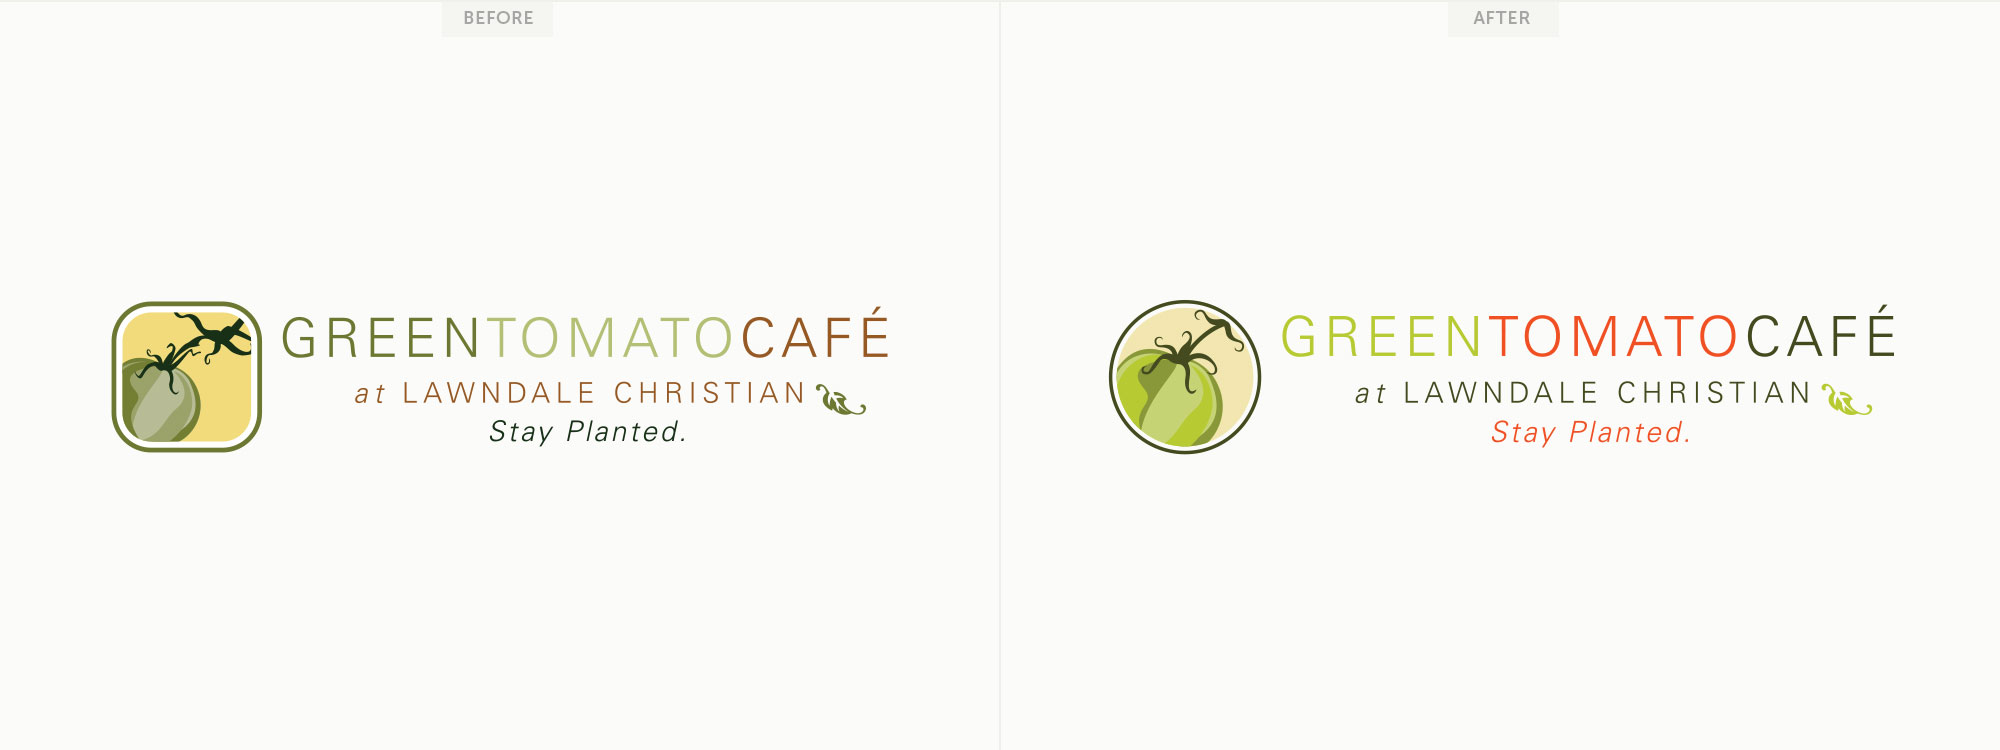 Before and after for Green Tomato Café's logo.Image copyright Jeff Miller, HellothisisJeff Design LLC